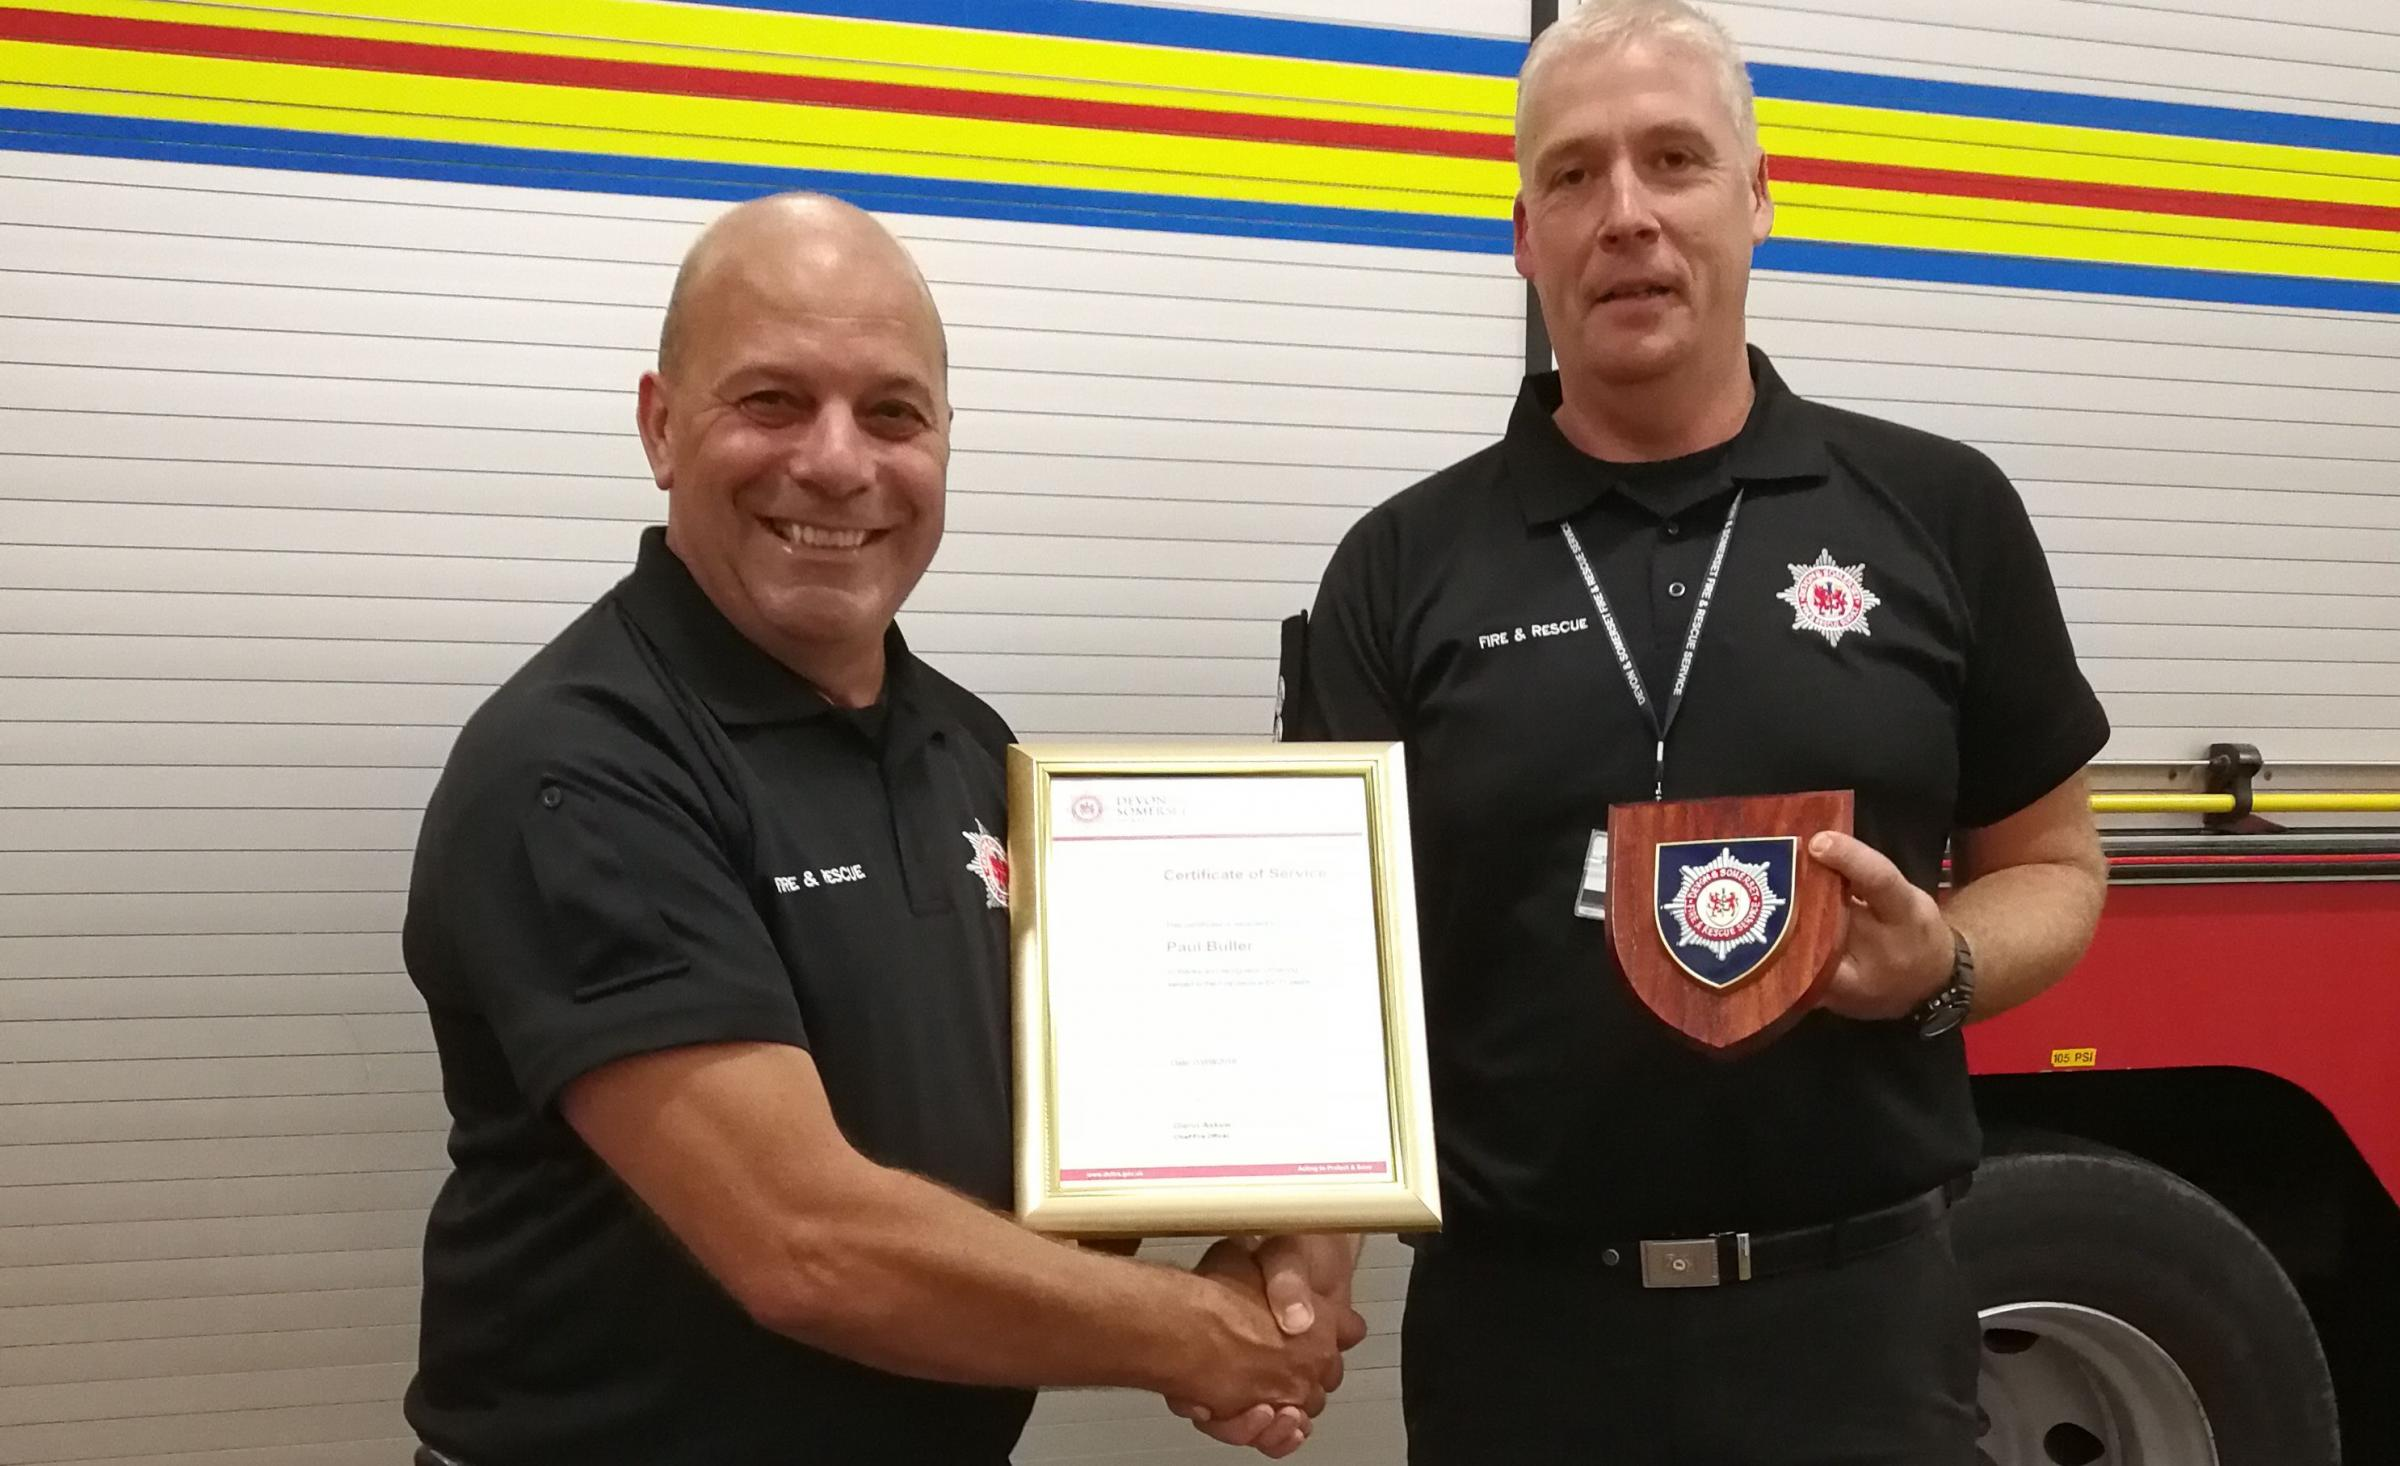 AWARD: Nether Stowey watch manager Nick Rich presents Paul Buller with his certificate of service and a commemorative plaque after 31 years as on-call firefighter